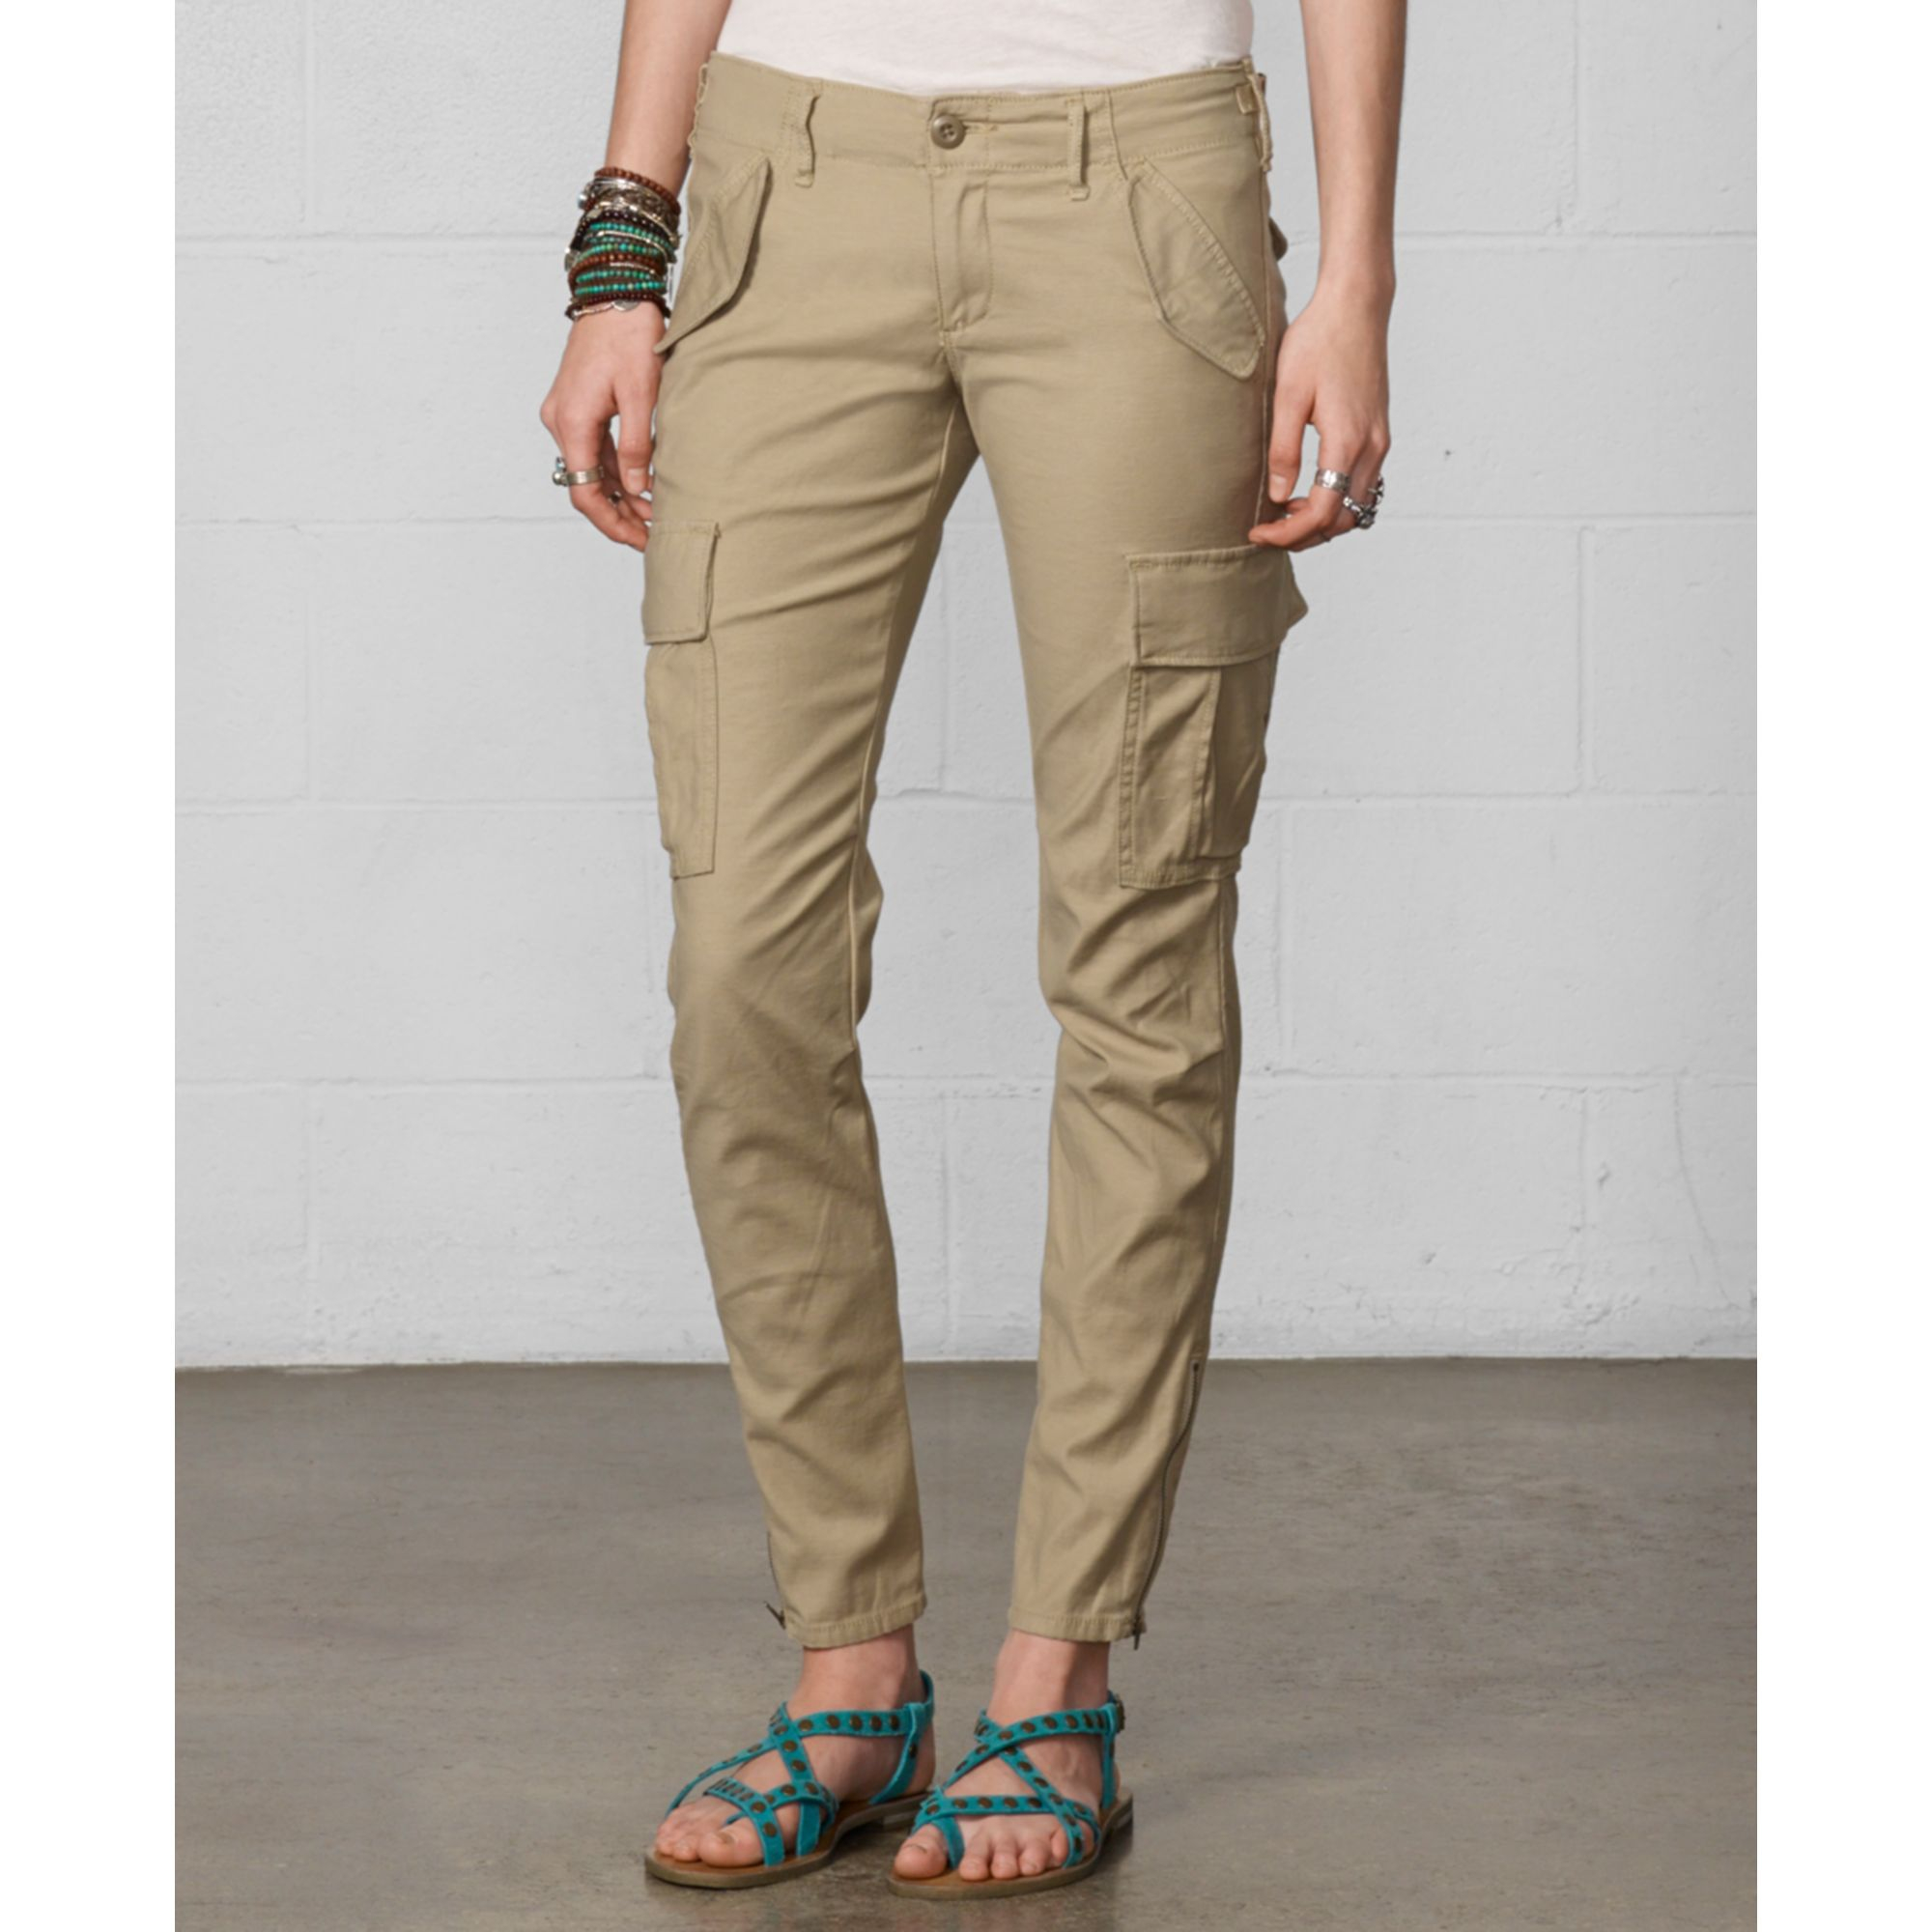 Denim & supply ralph lauren Skinny Cargo Pants in Natural | Lyst